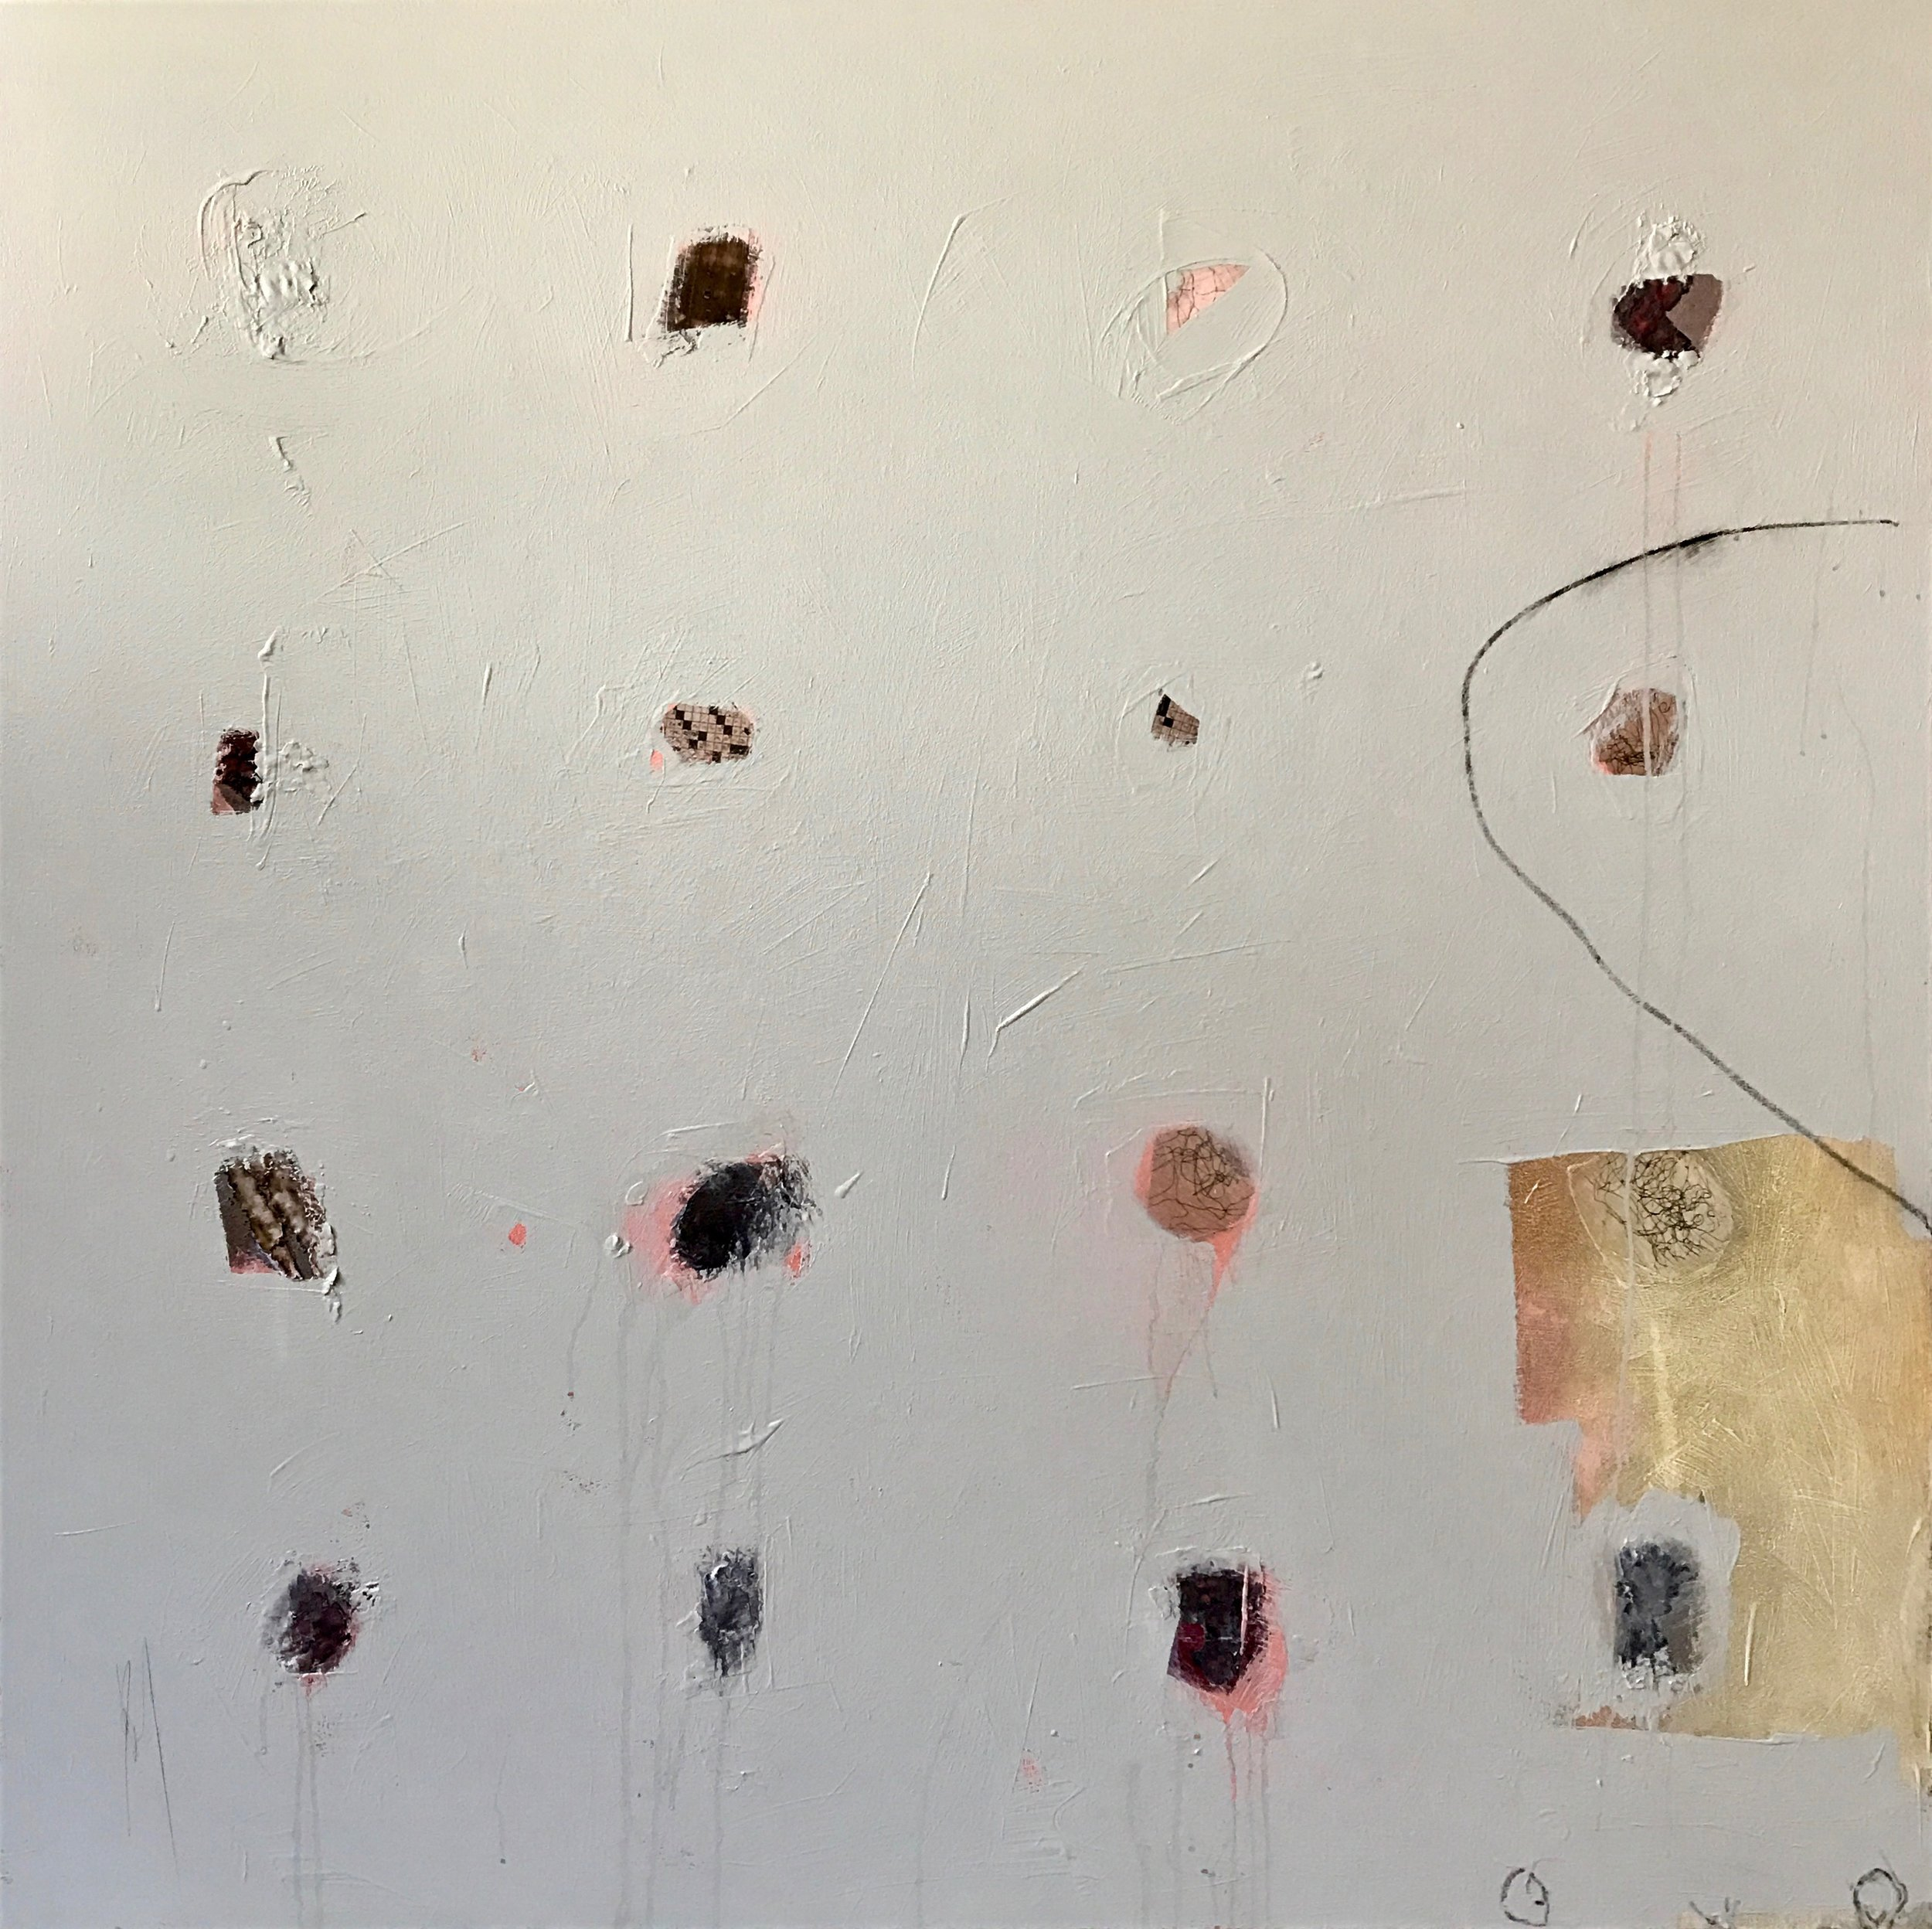 THE TRAVELING JUGGLER | 50 x 50 inches | mixed media on canvas | 2019